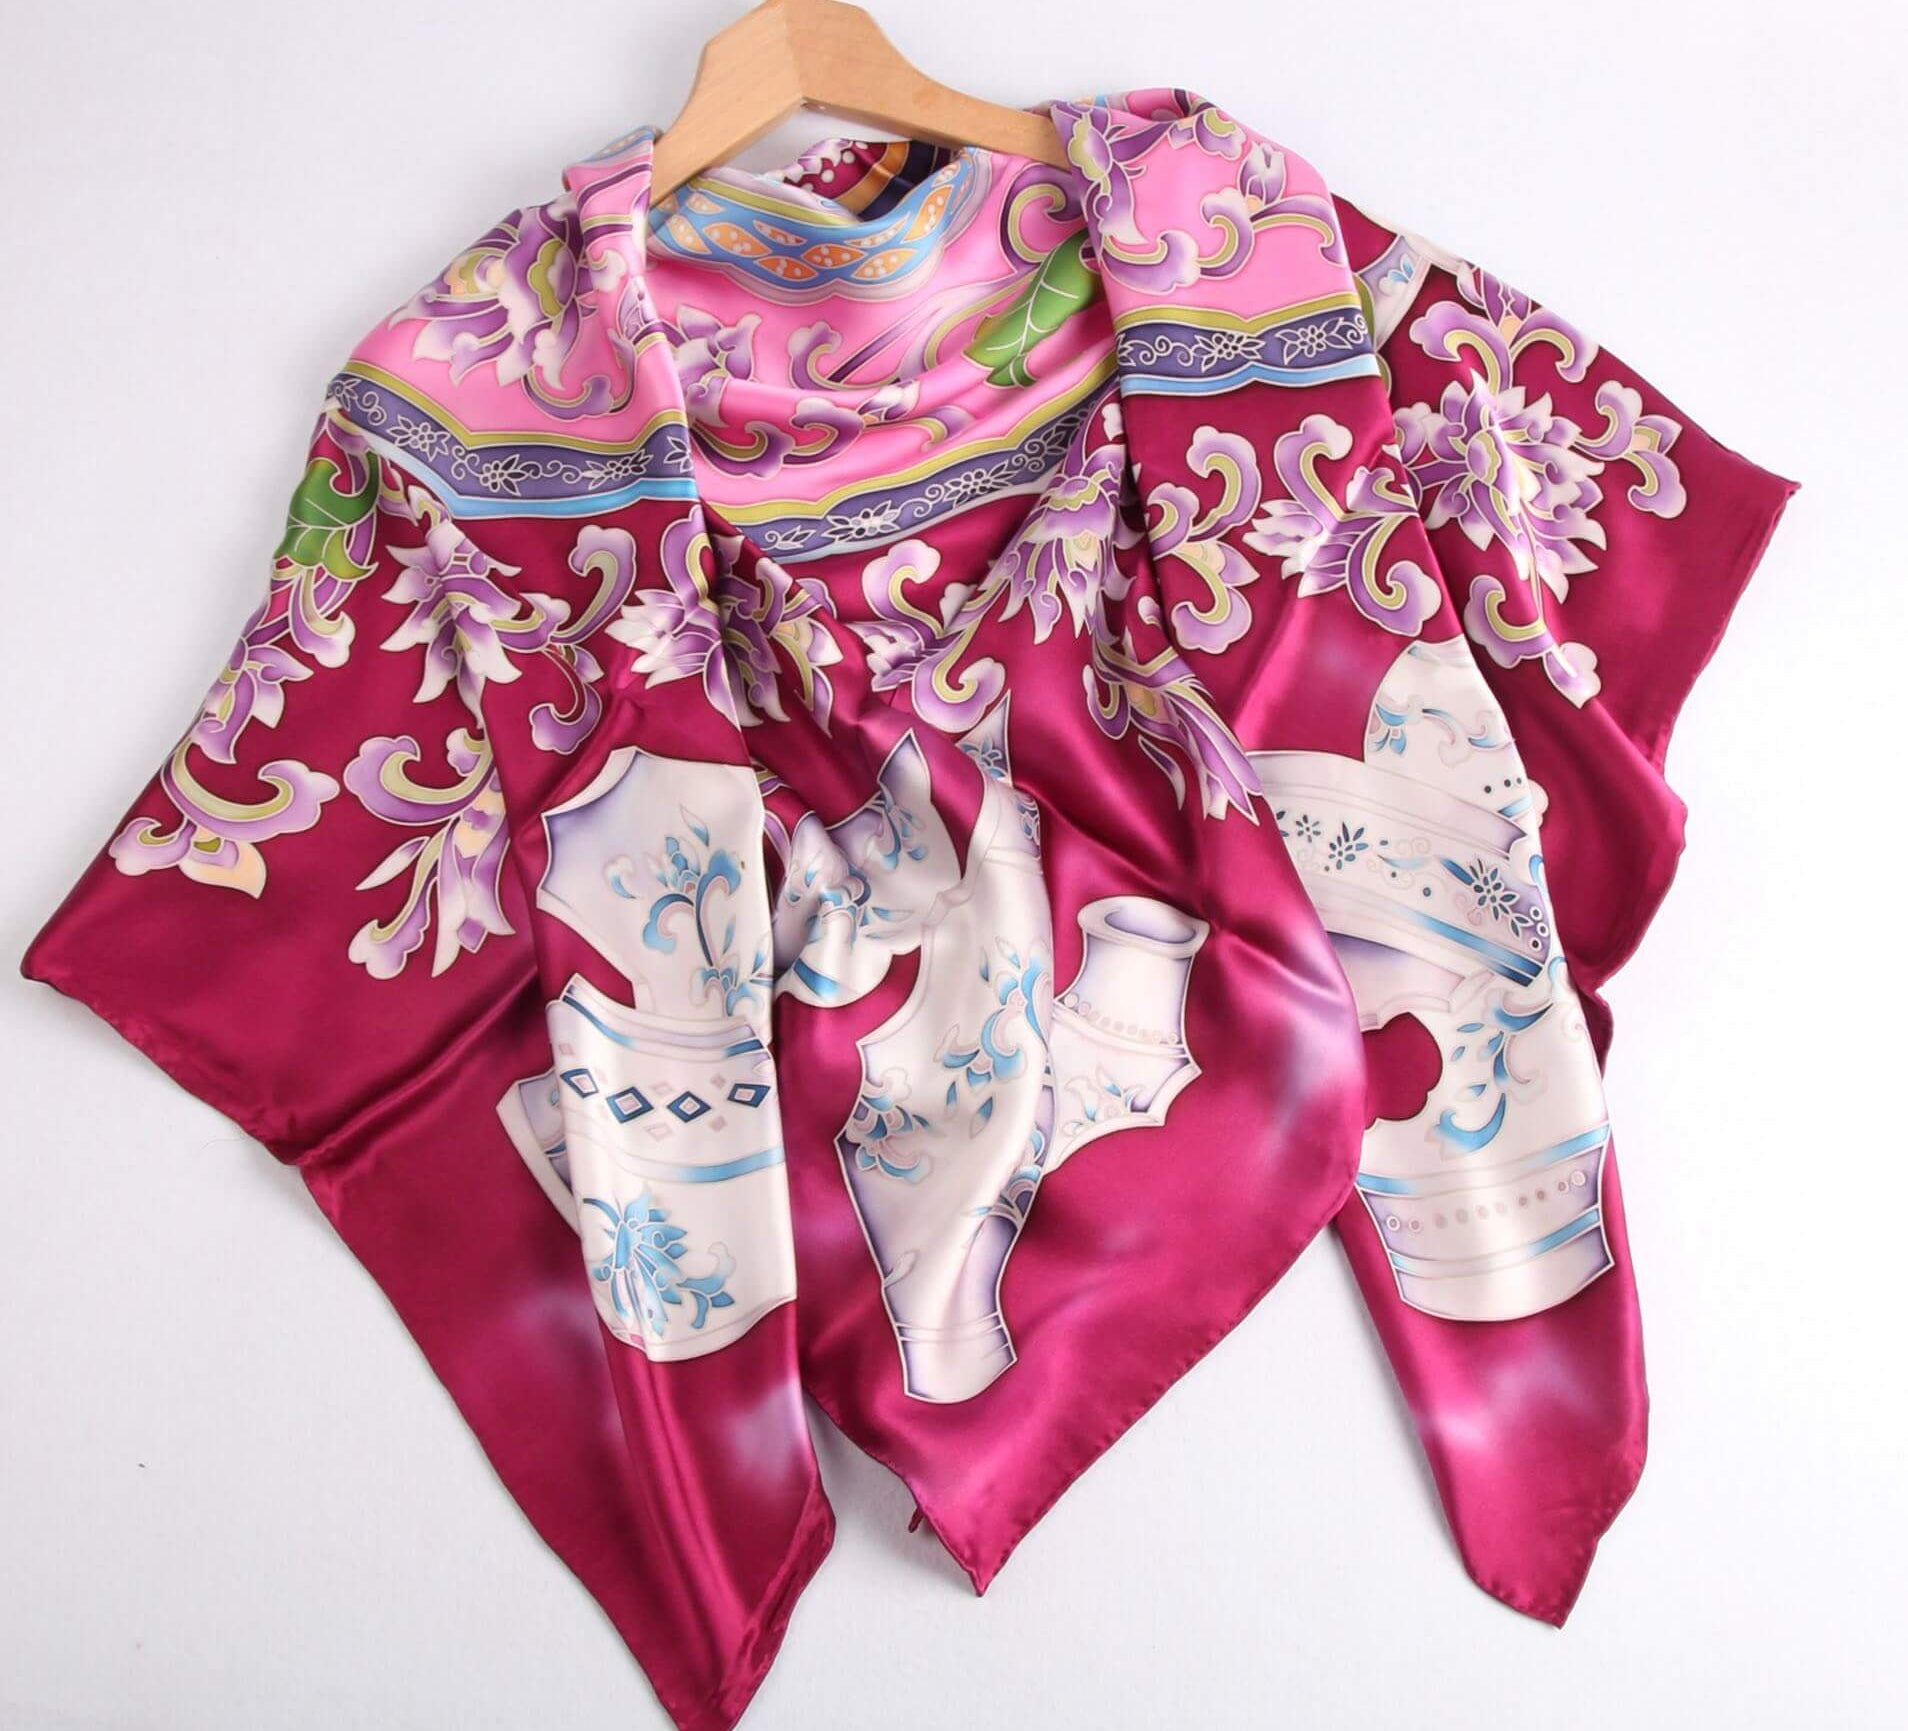 Limited Edition Hand Painted Silk Scarf Pink - Vshine Silk and Shine Fashion Accessories